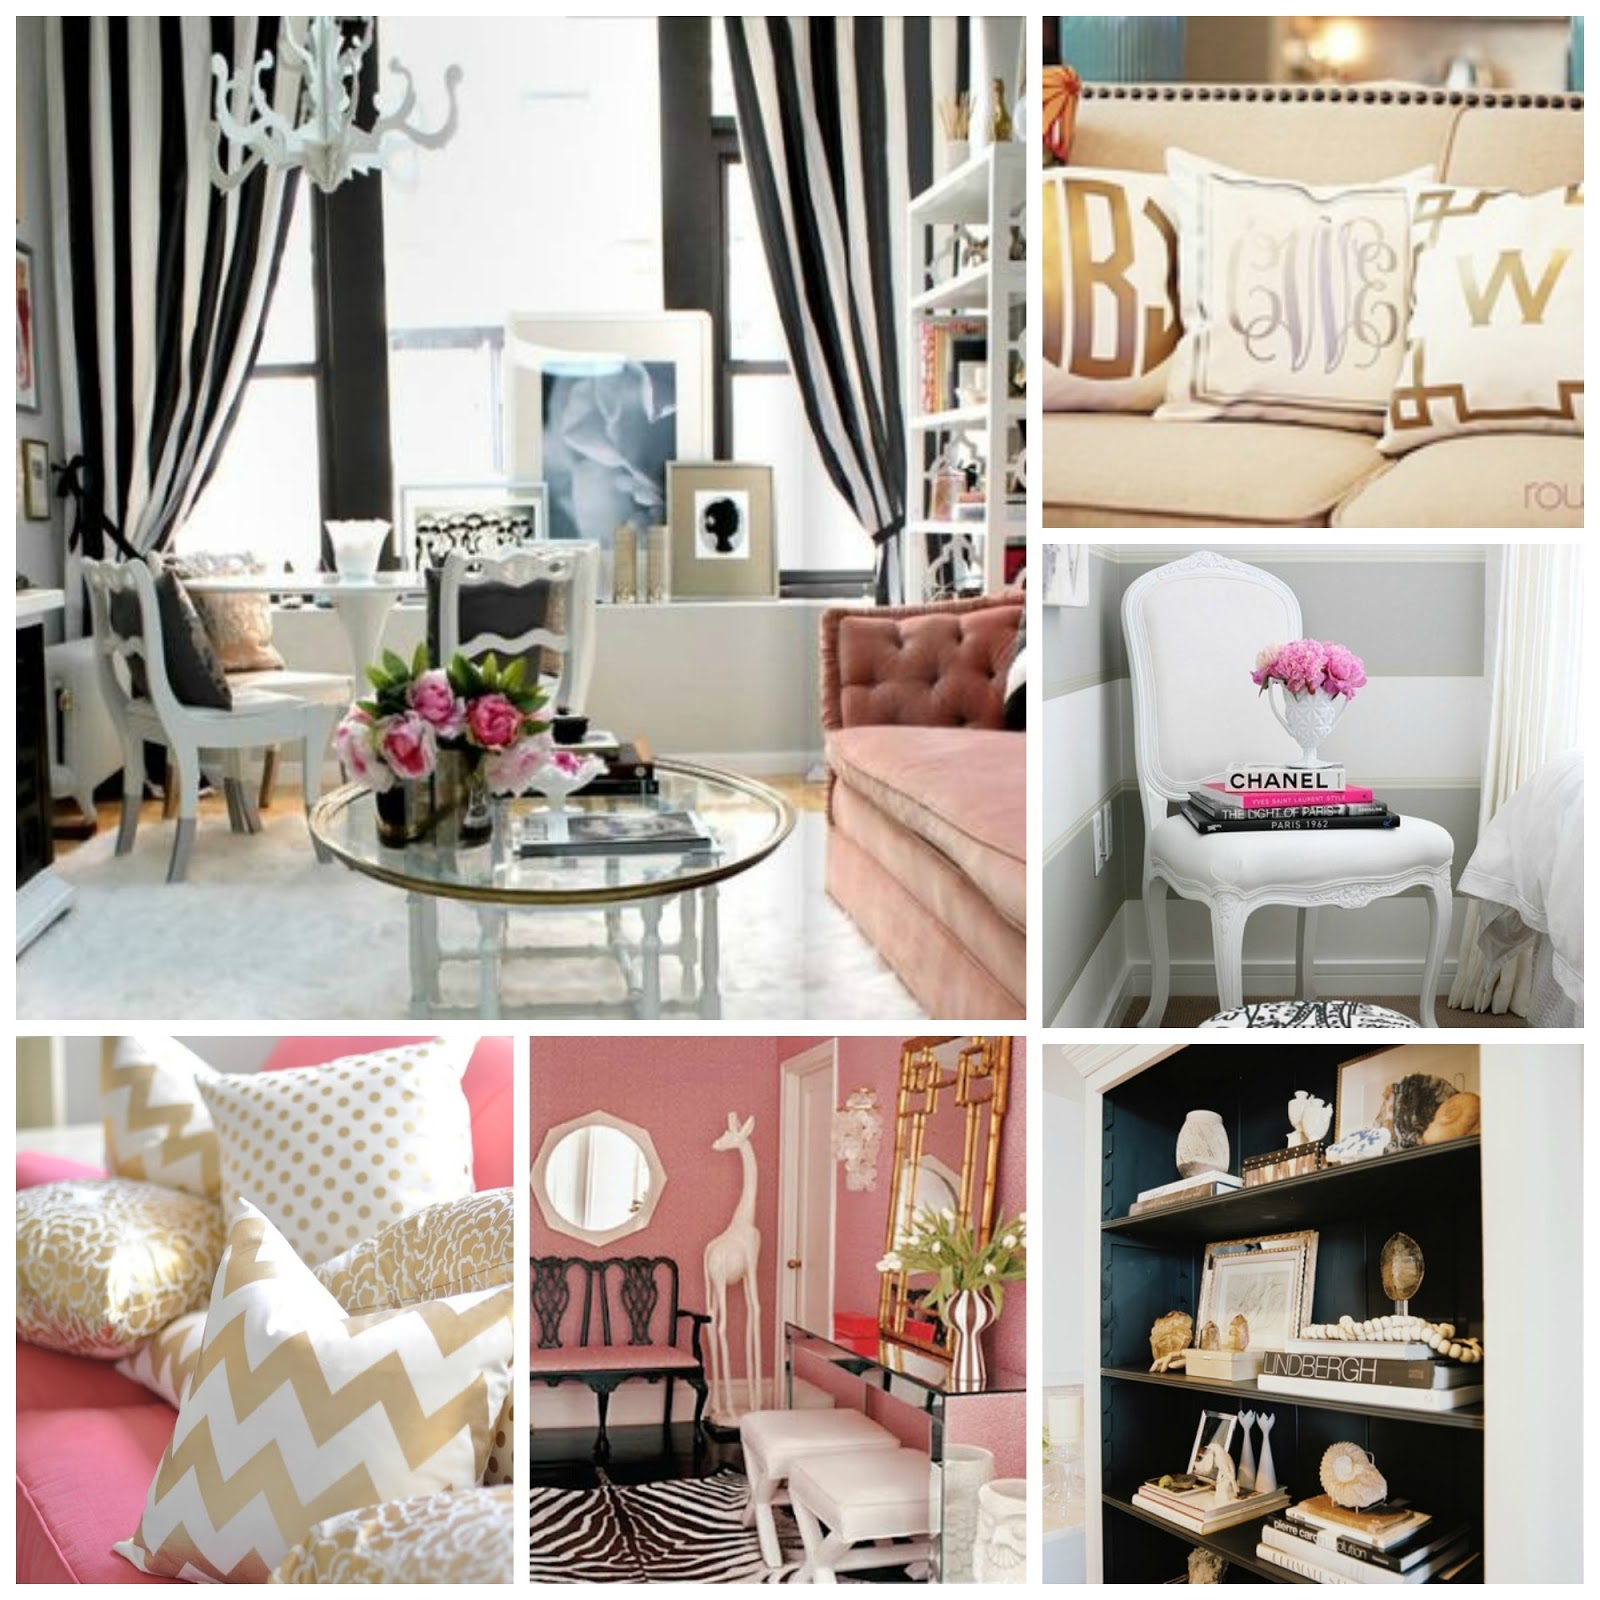 White and gold white and gold room ideas - White and gold room ...